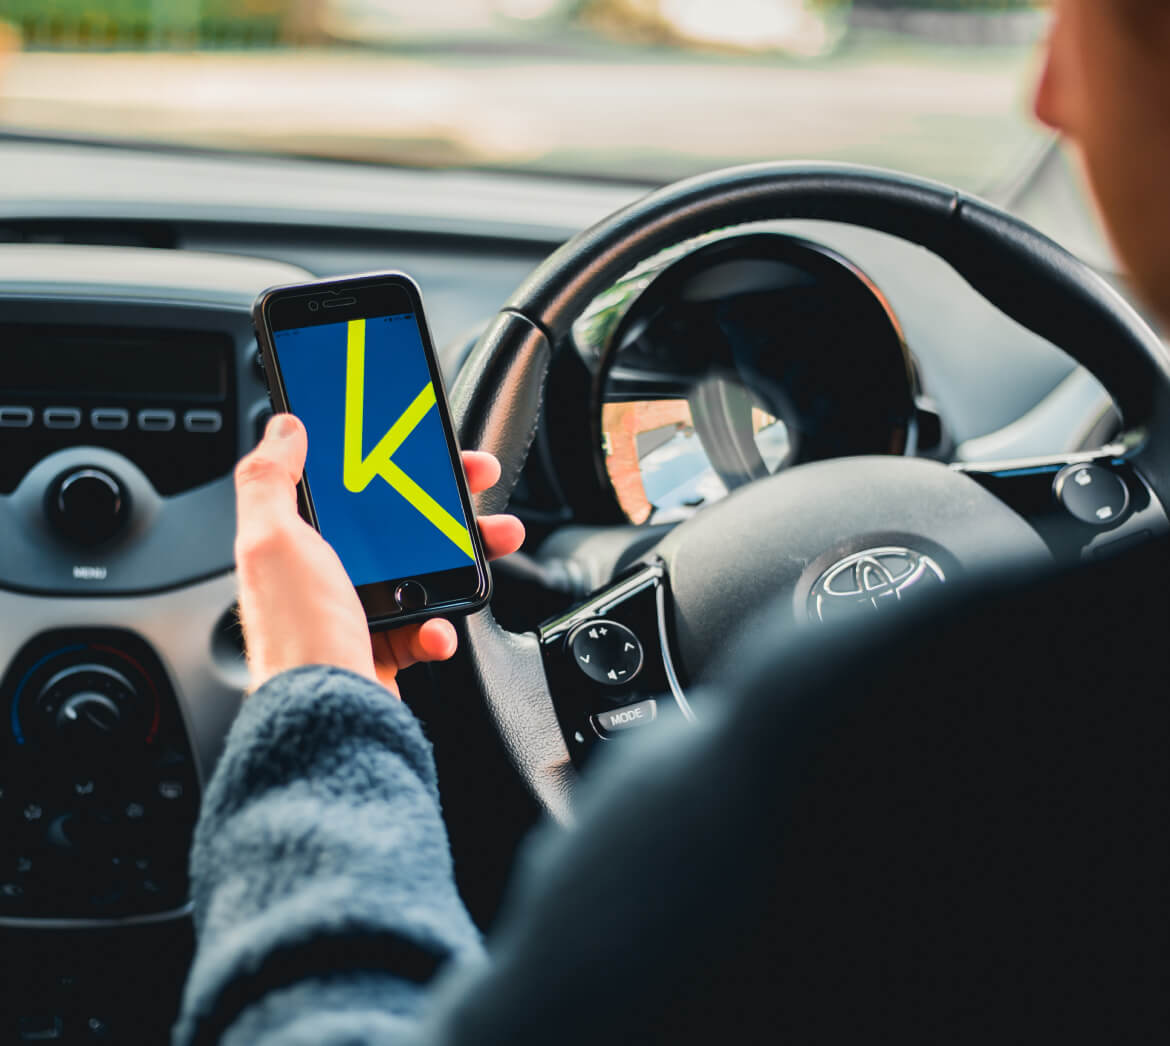 Karshare App next to steering wheel for car rentals and car sharing